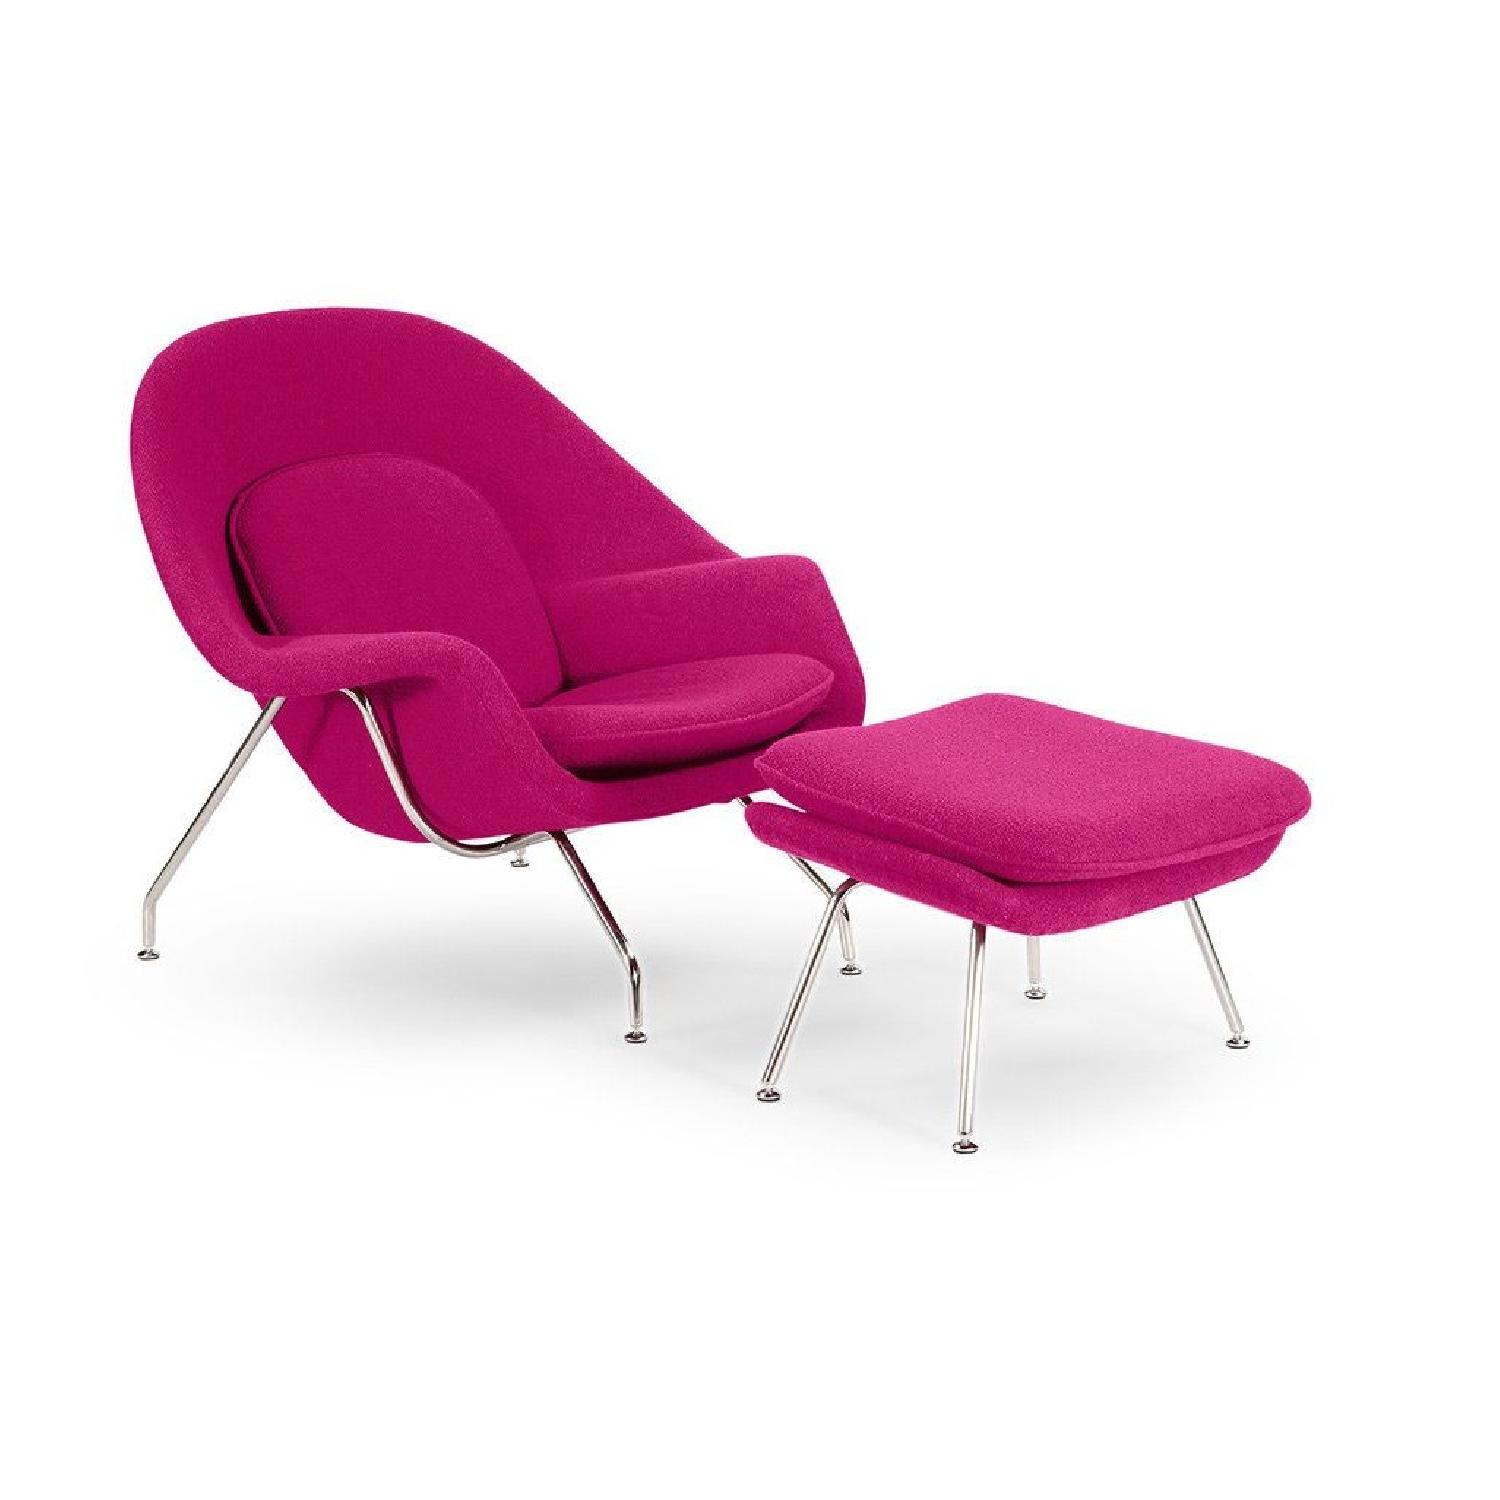 dwr womb chair louis arm rove concepts retro modern lounge and ottoman